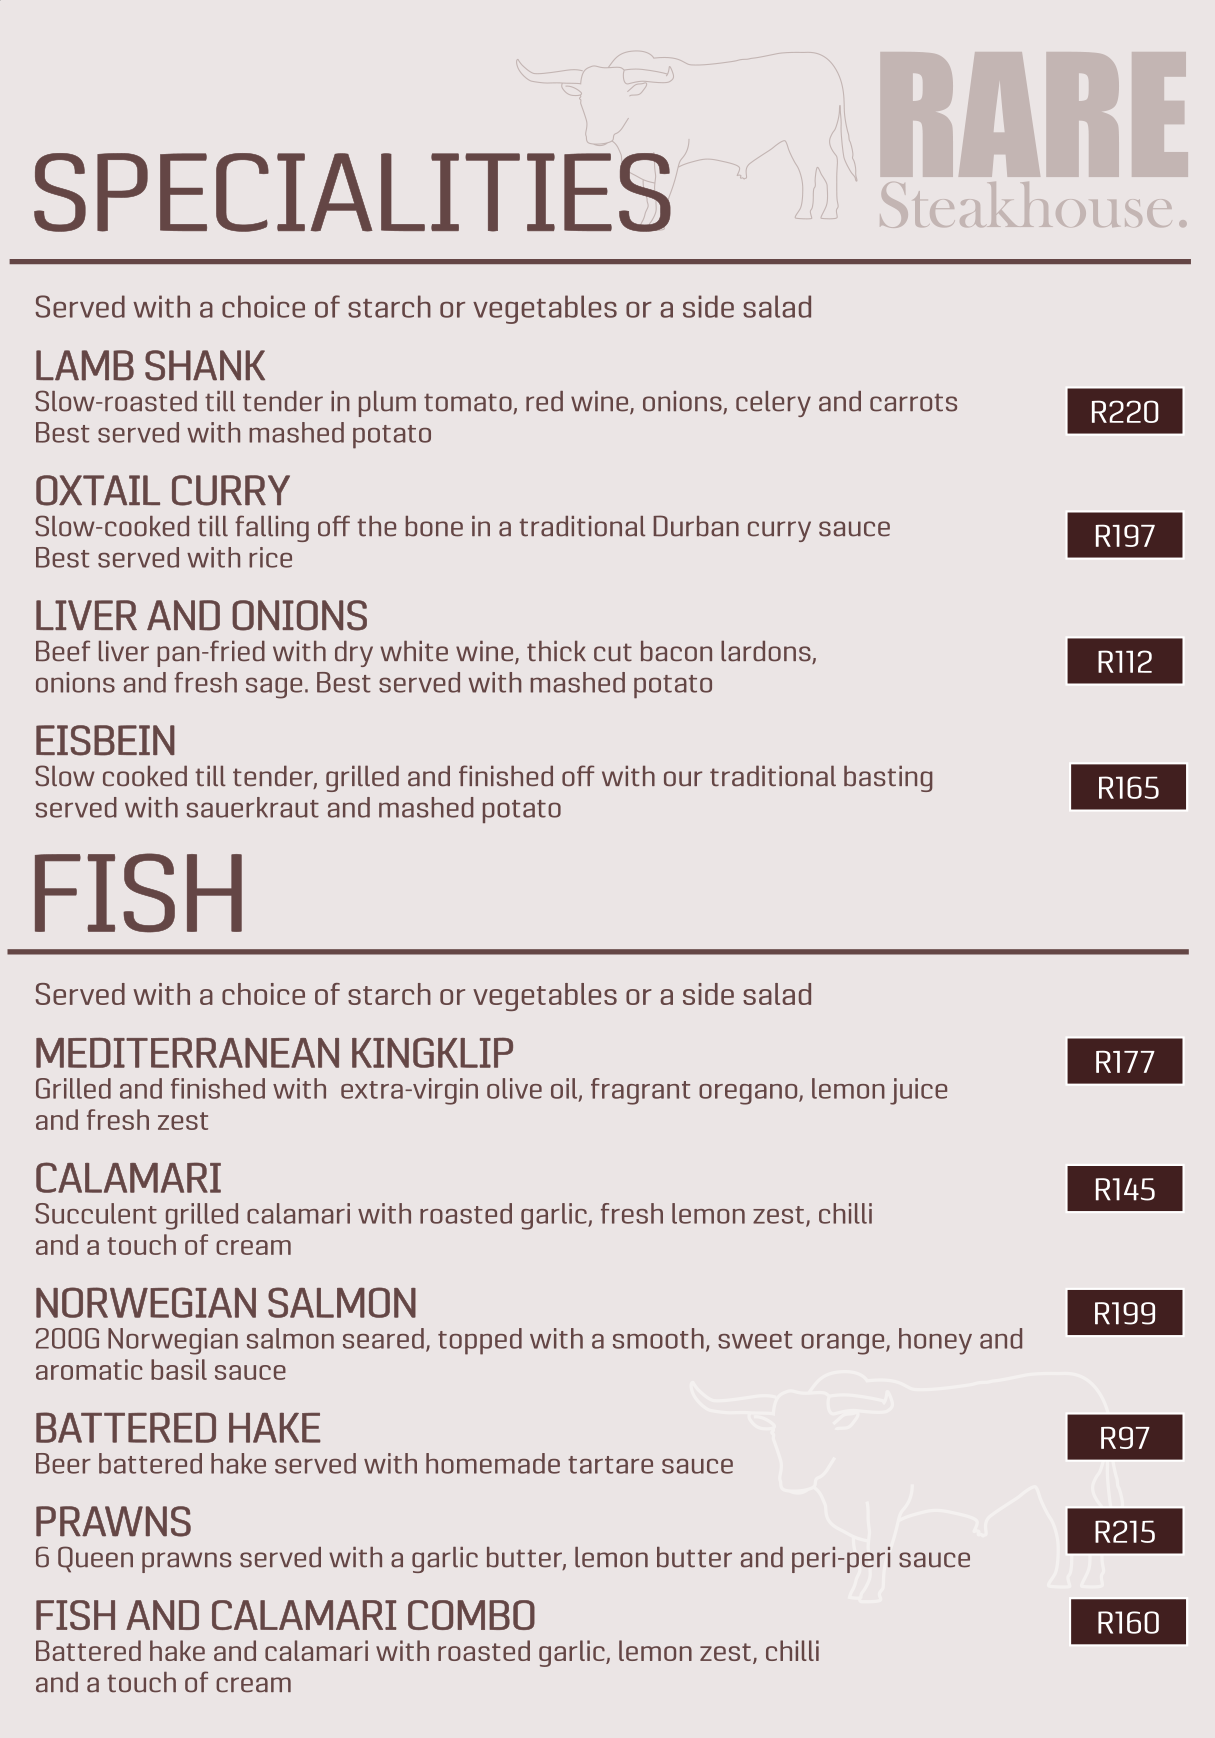 Rare Steakhouse Menu July 2018